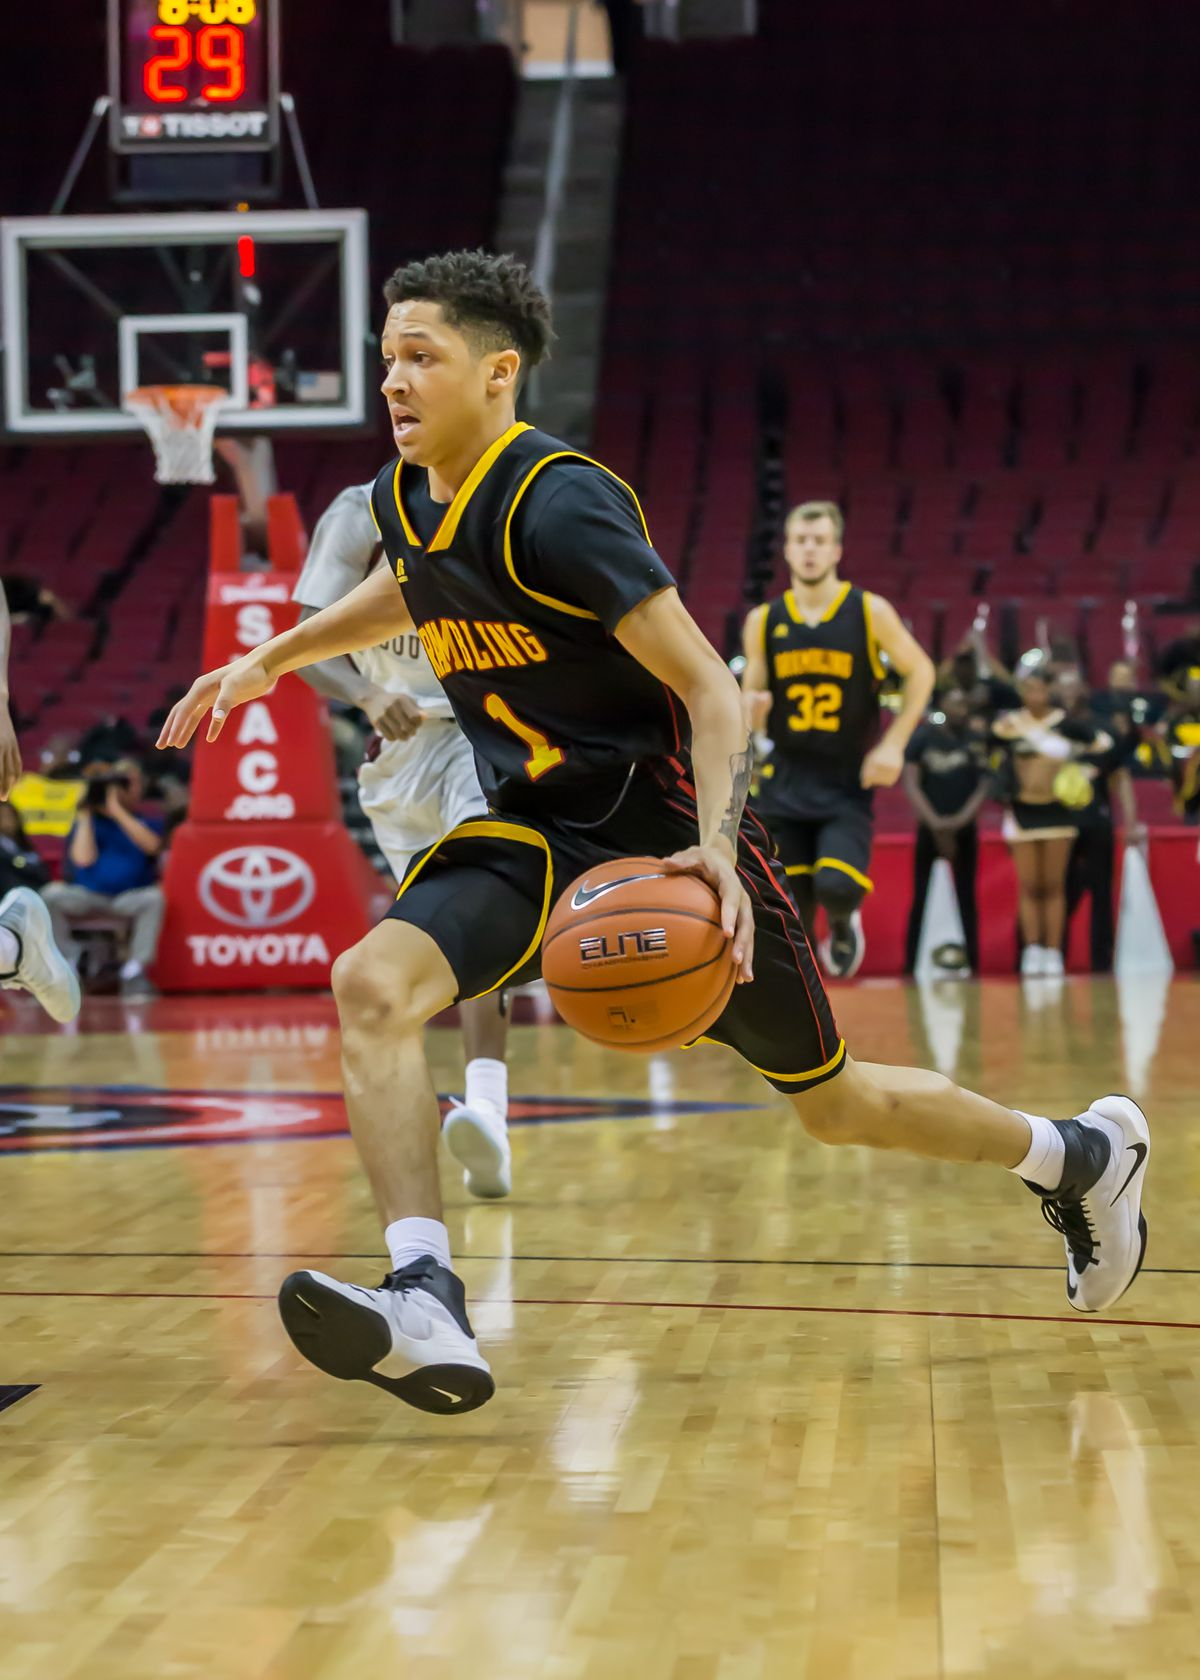 COLLEGE BASKETBALL: MAR 10 SWAC Tournament - Texas Southern v Grambling State